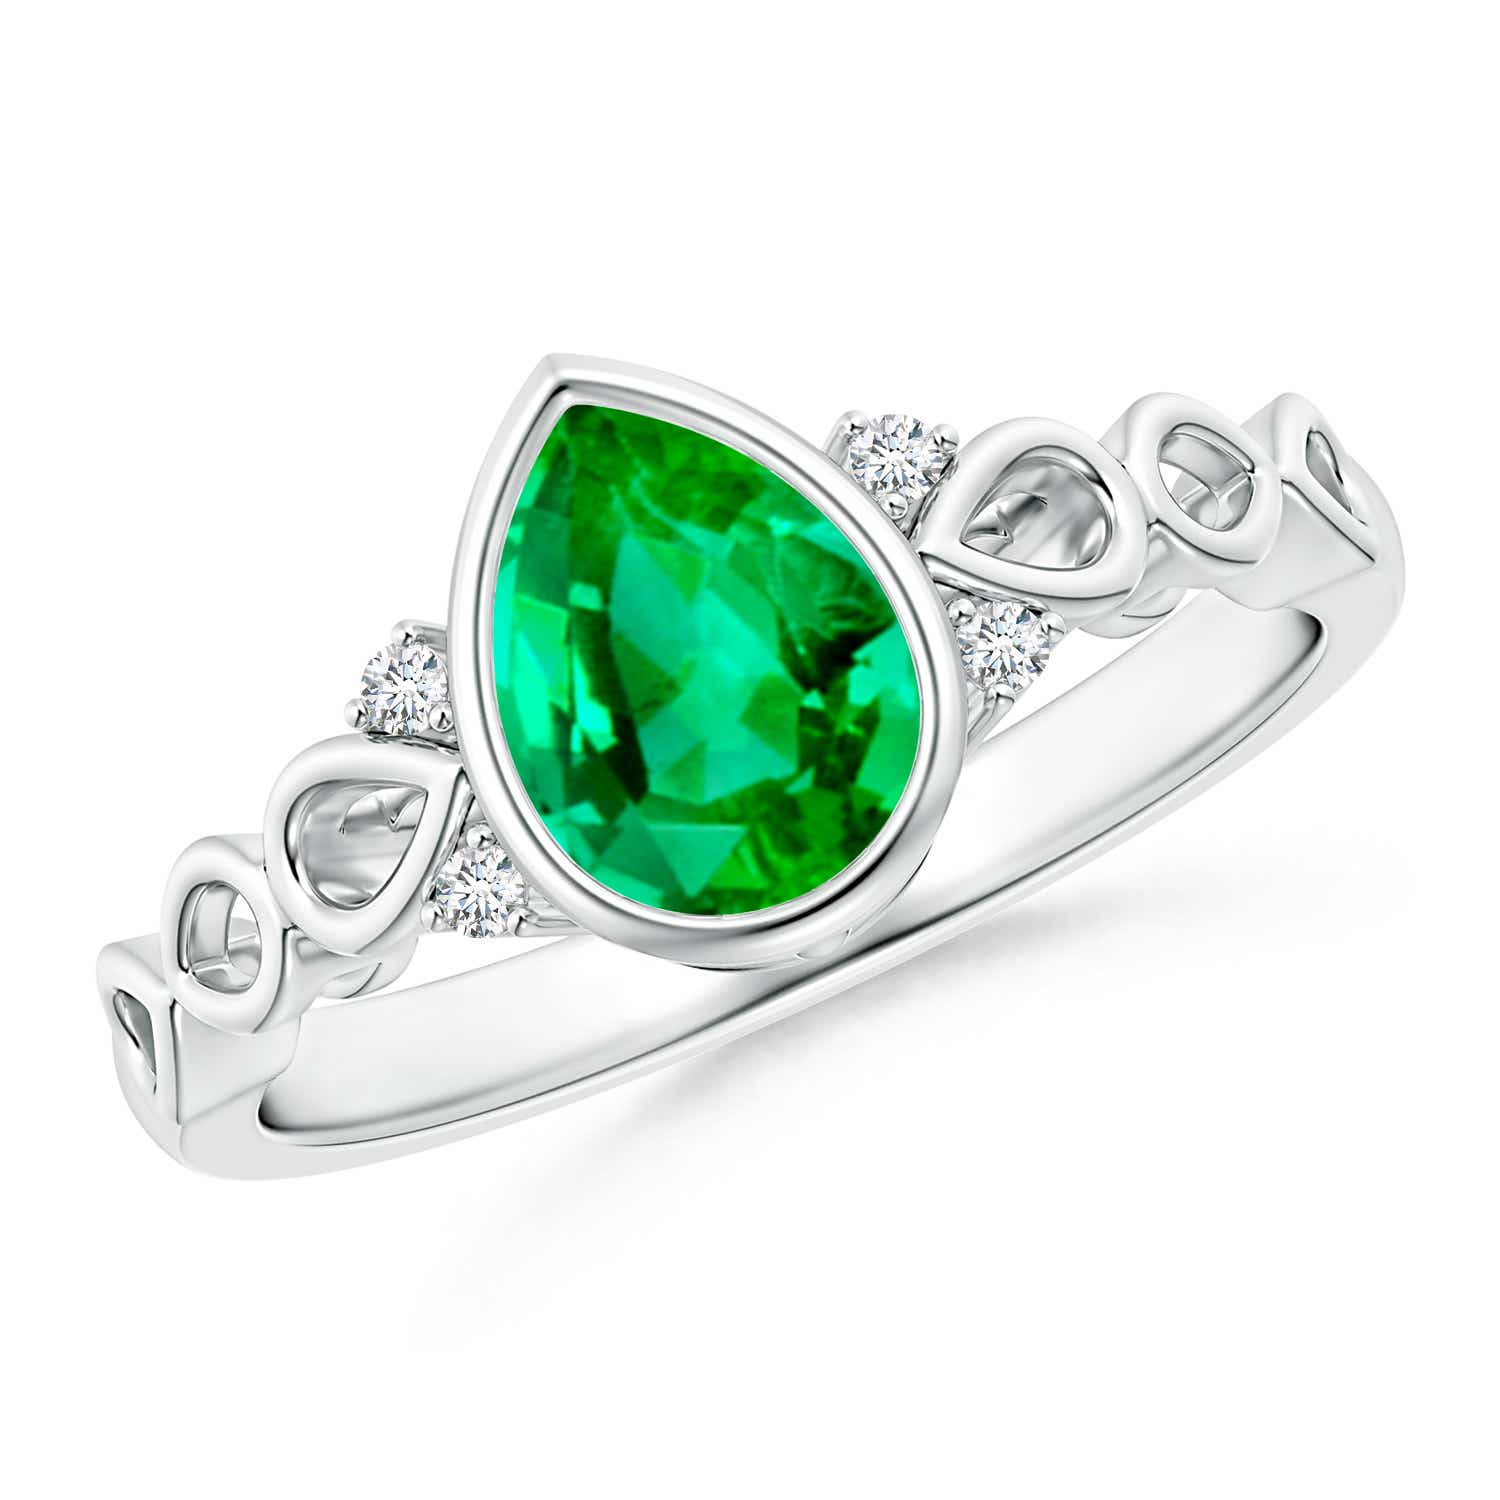 Bezel Set Vintage Pear Emerald Ring with Diamond Accents - Angara.com